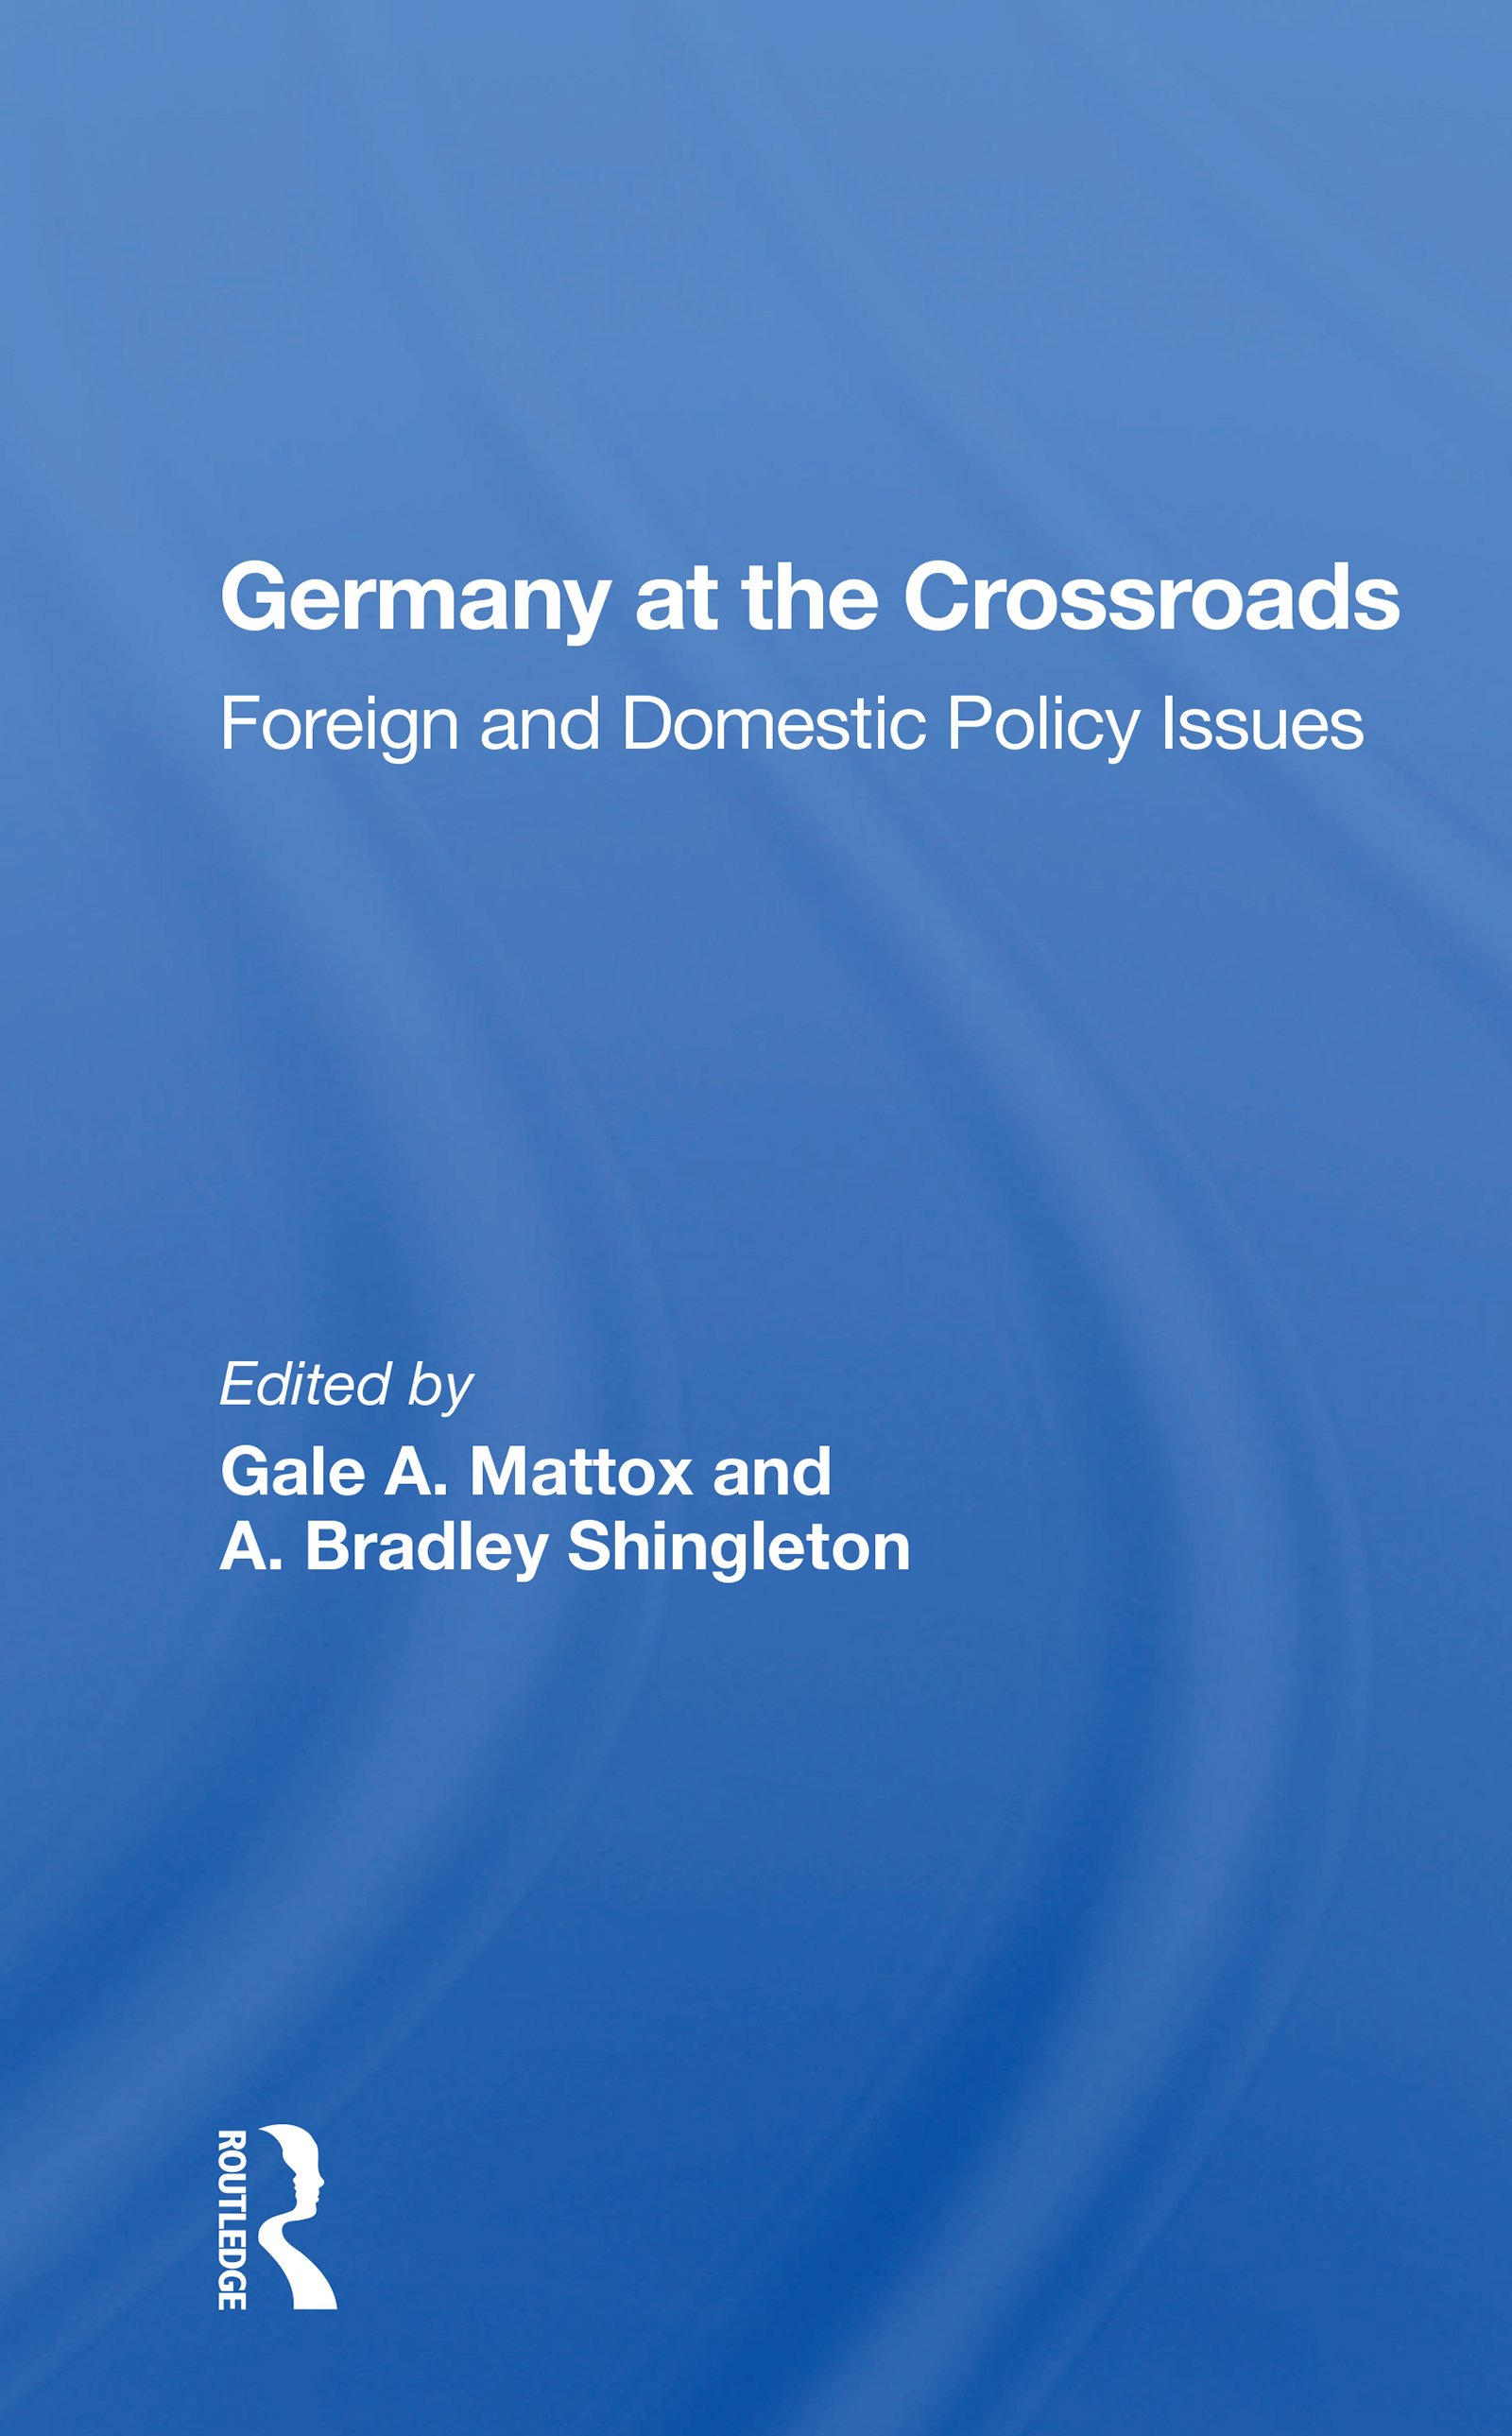 Germany at the Crossroads